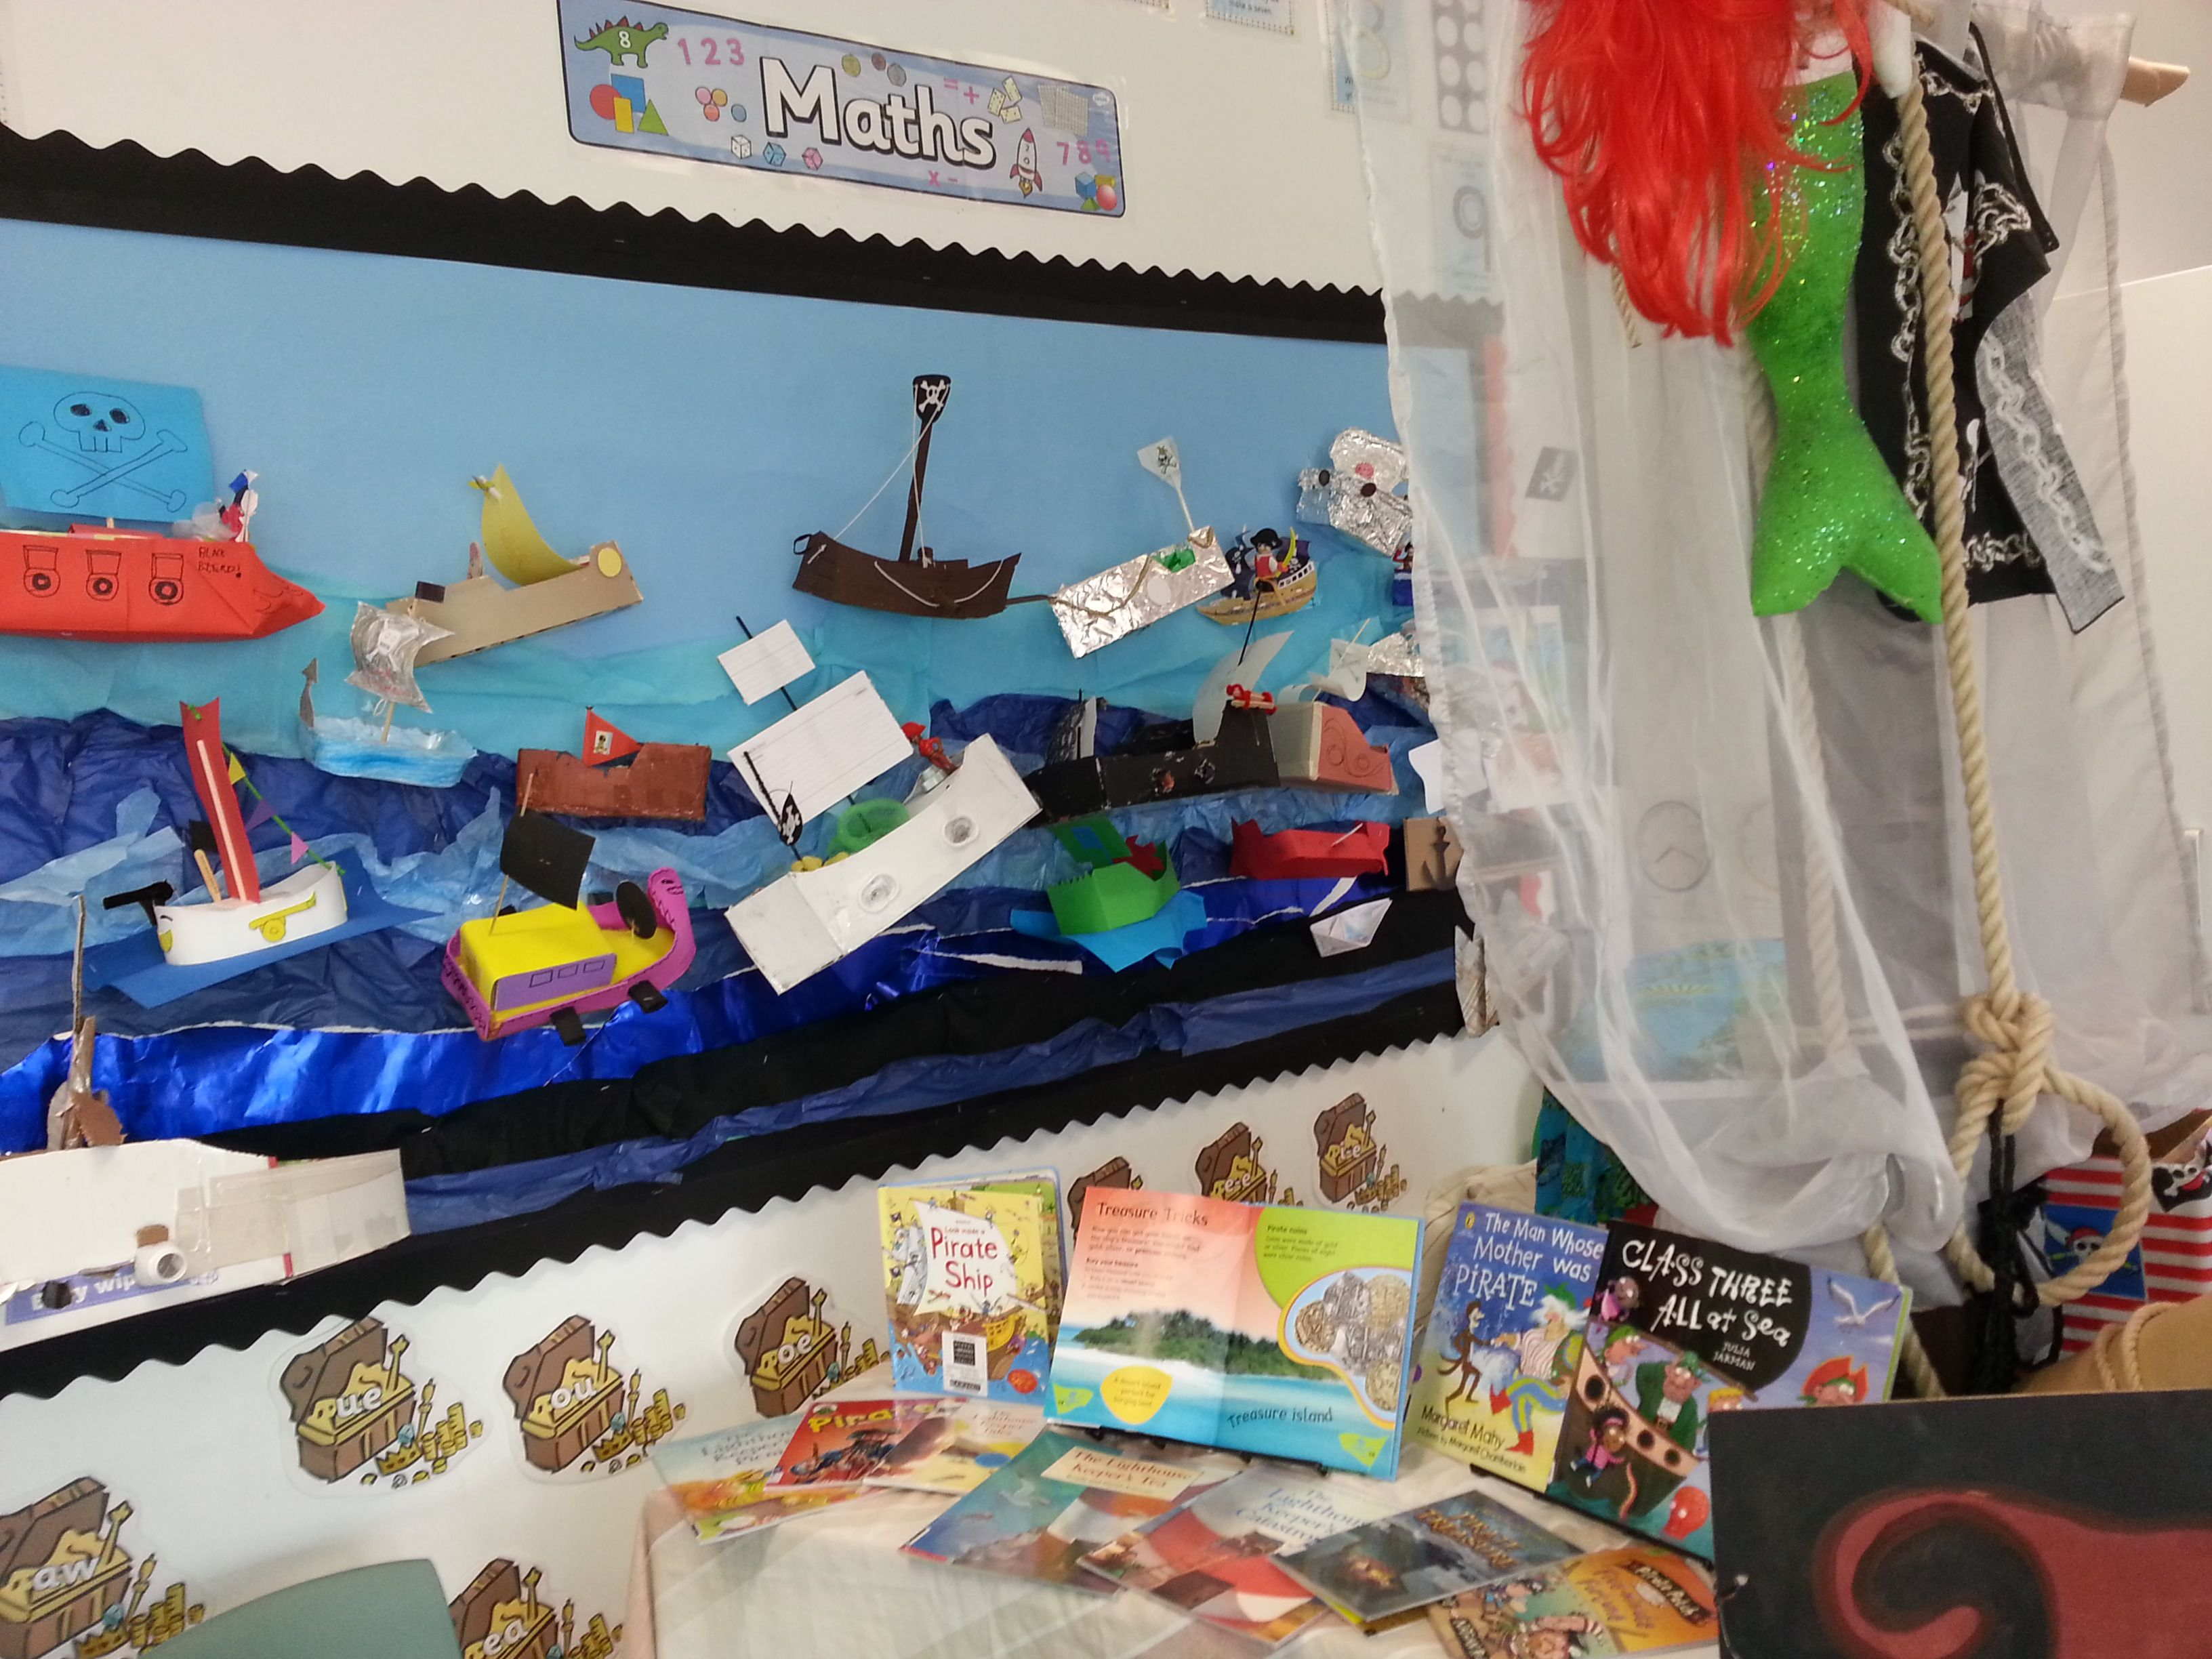 The children made pirate ships as part of their homework.